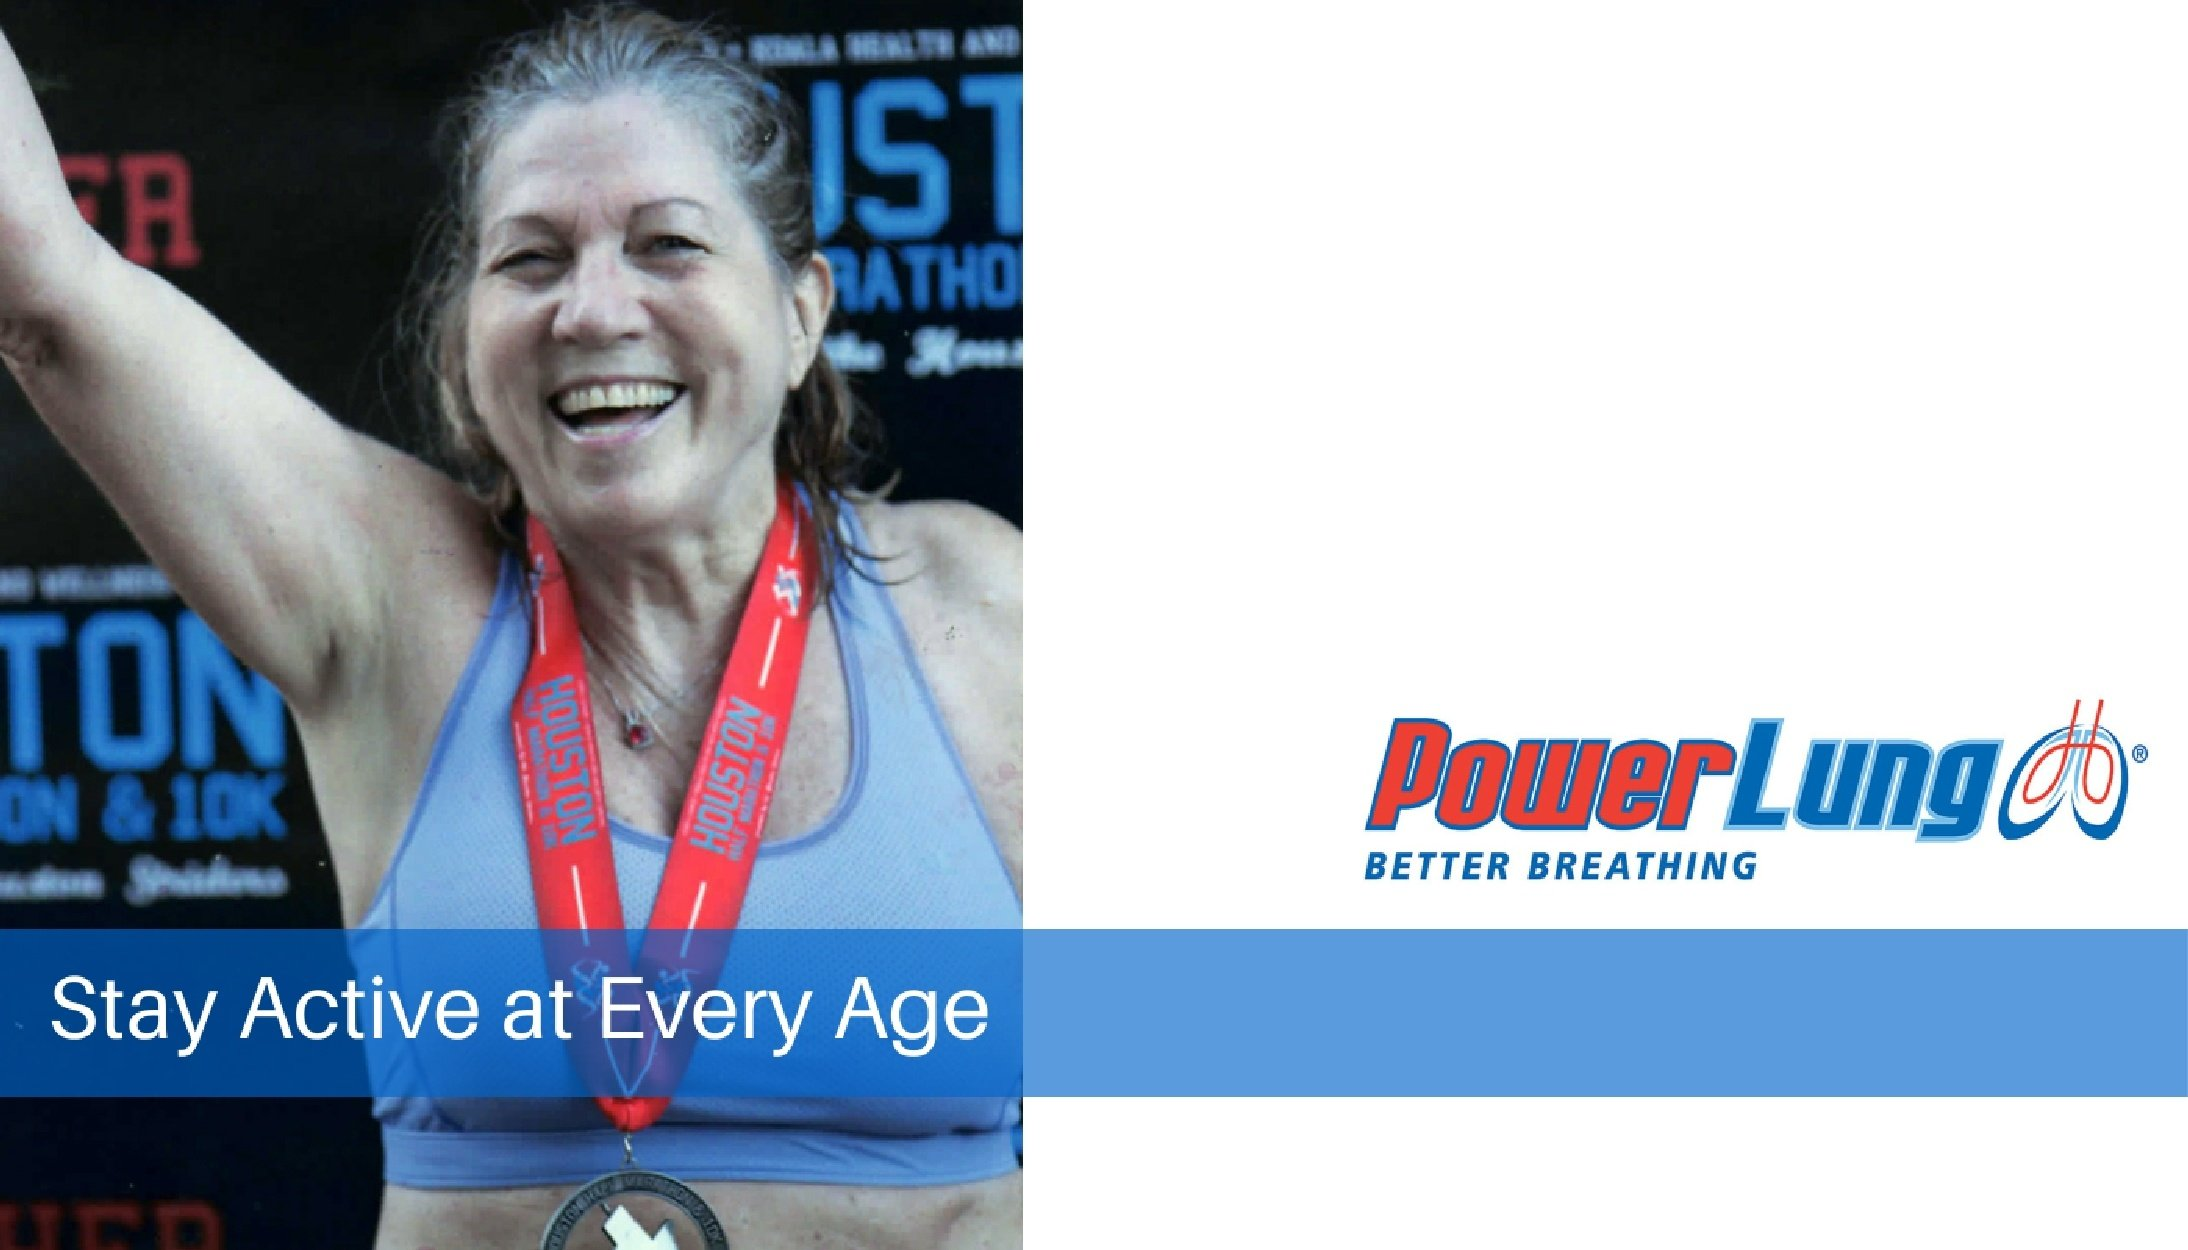 PowerLung - Stay Active at Every Age.jpg